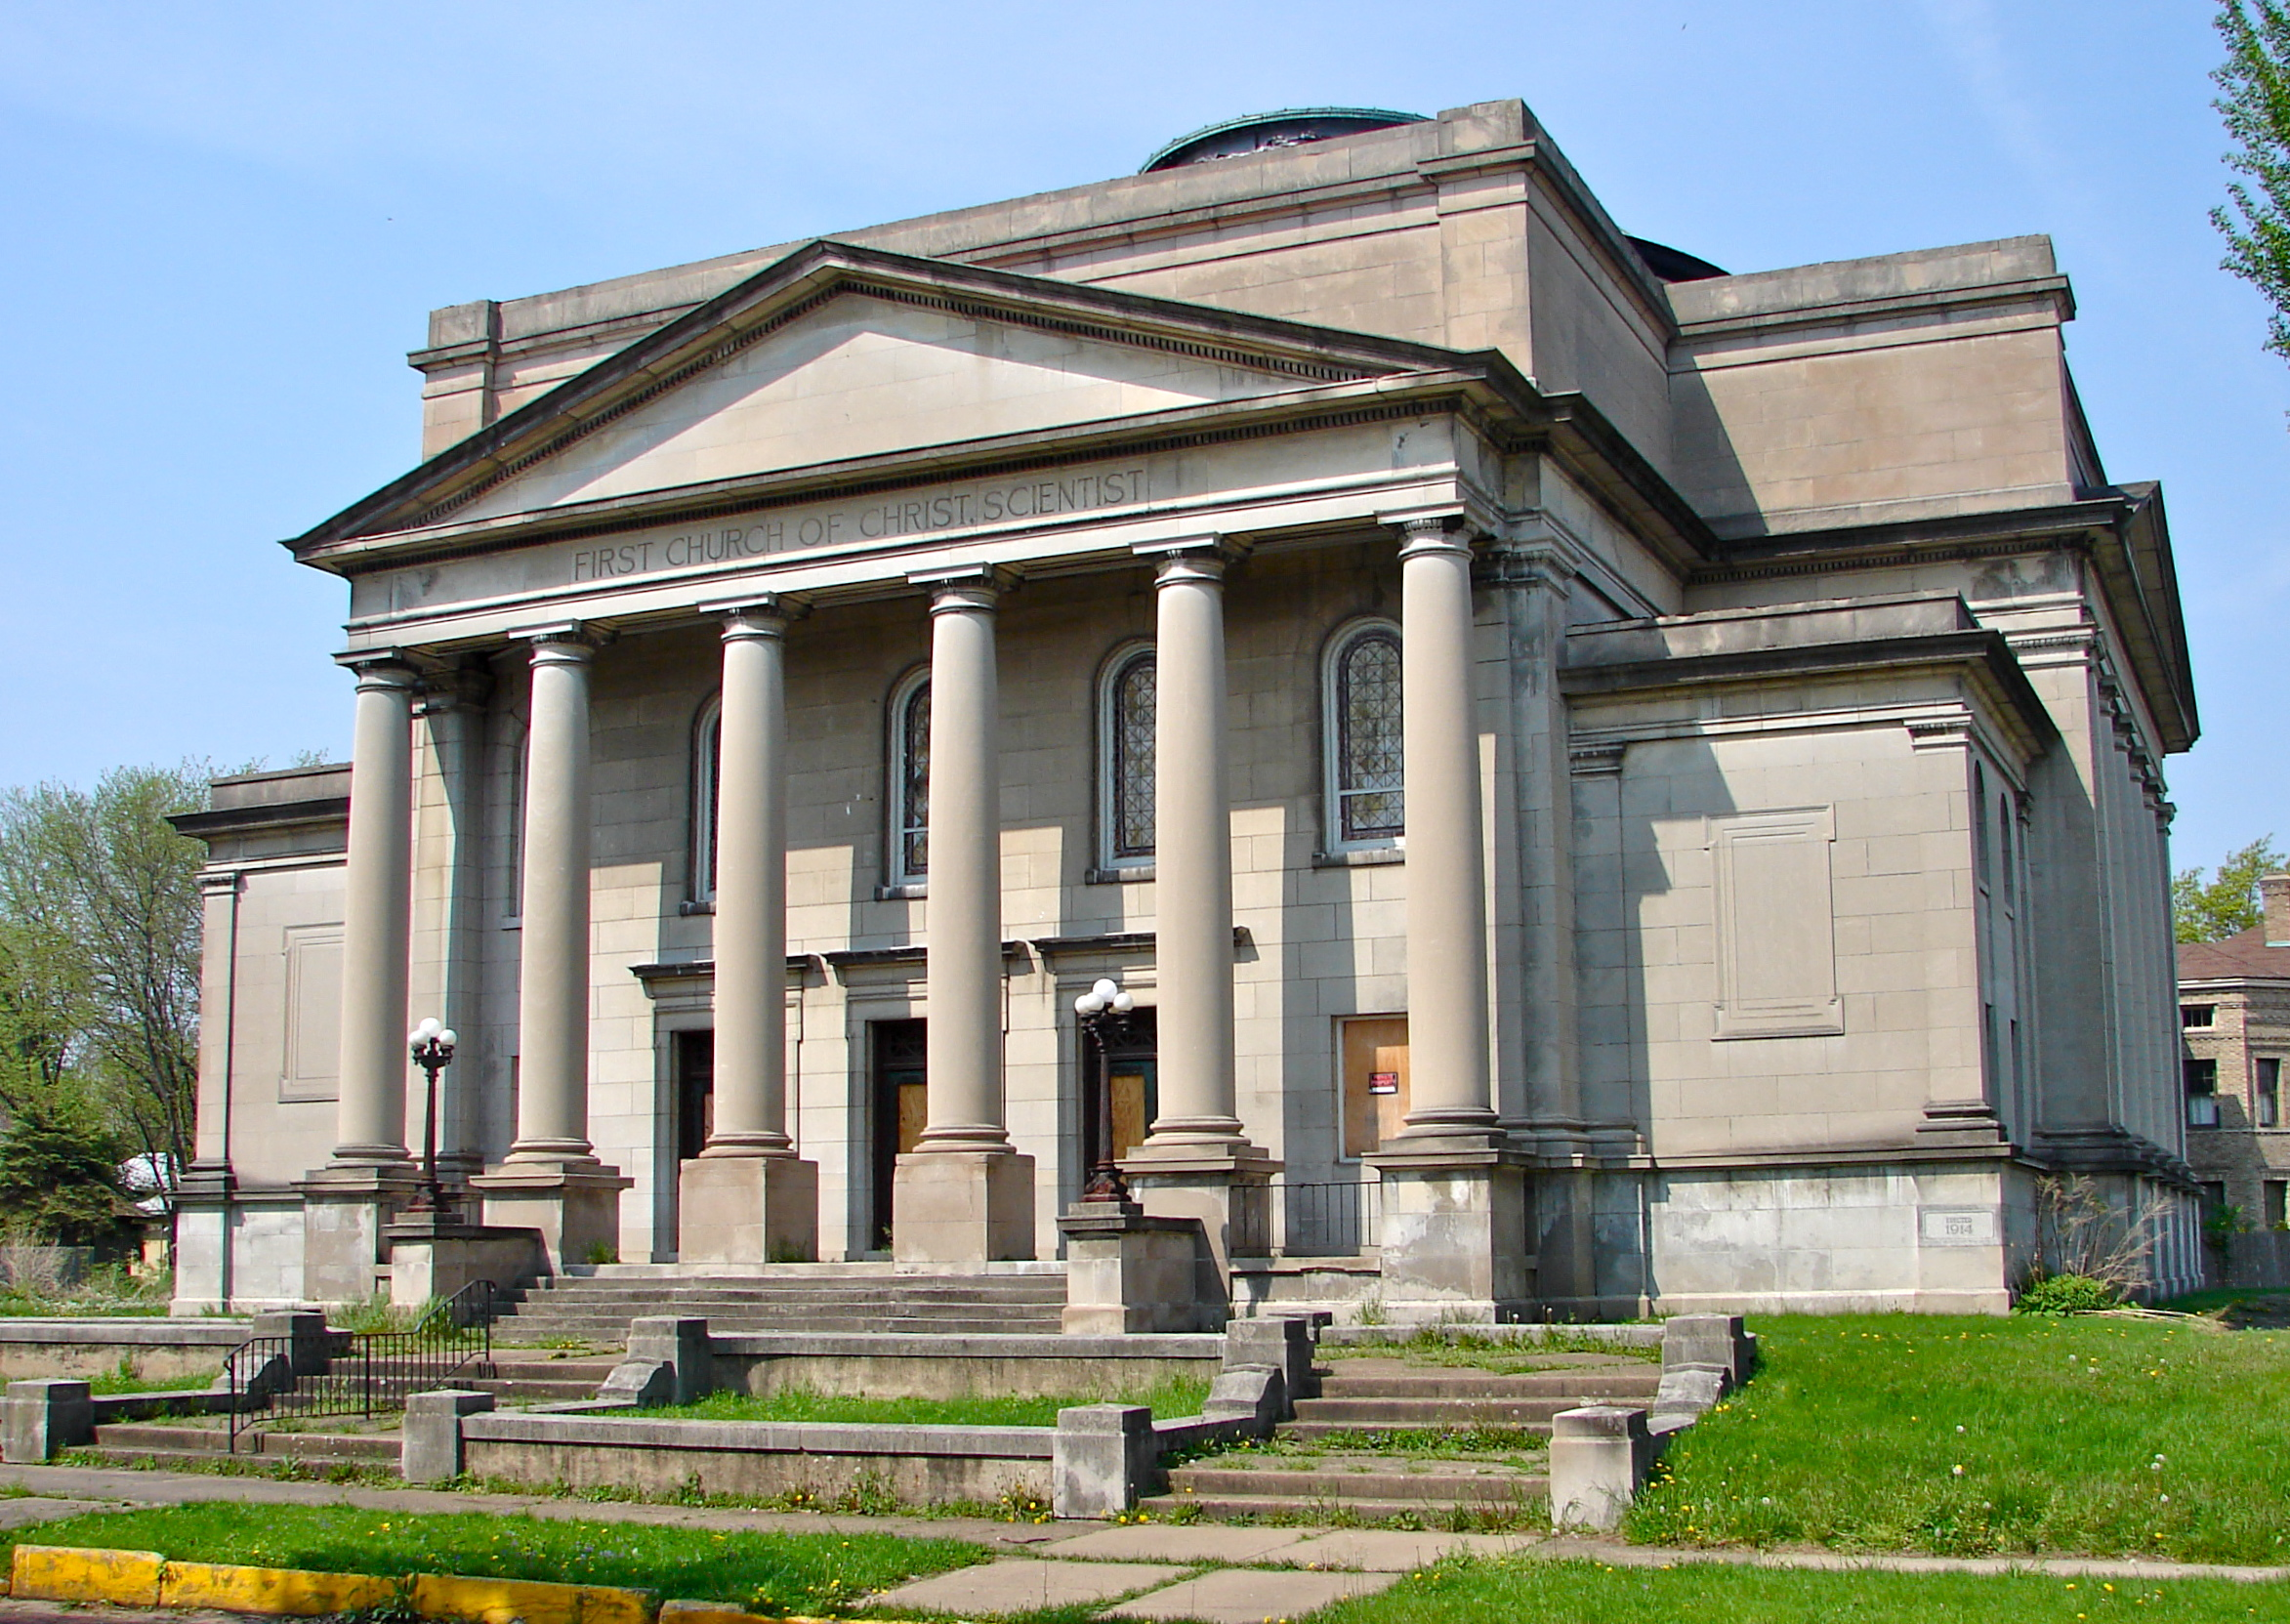 List of former Christian Science churches, societies and